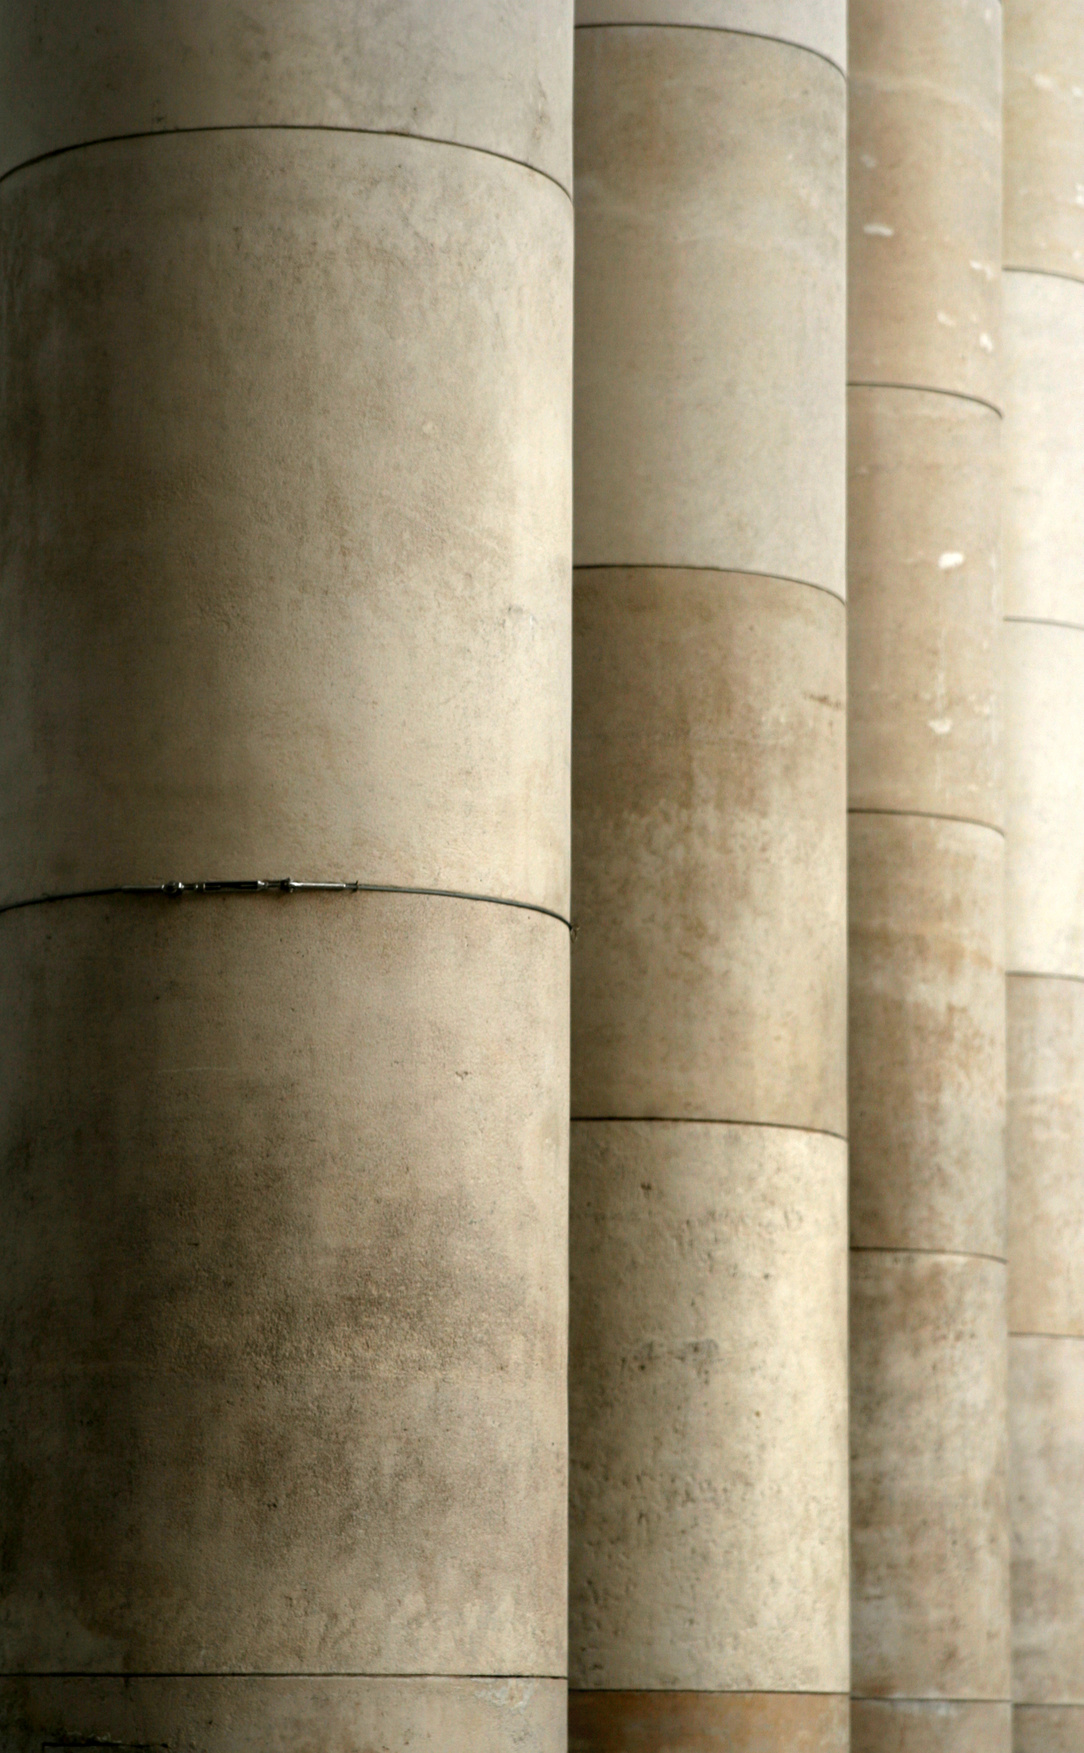 stone pillars at the palais de tokyo in paris, france